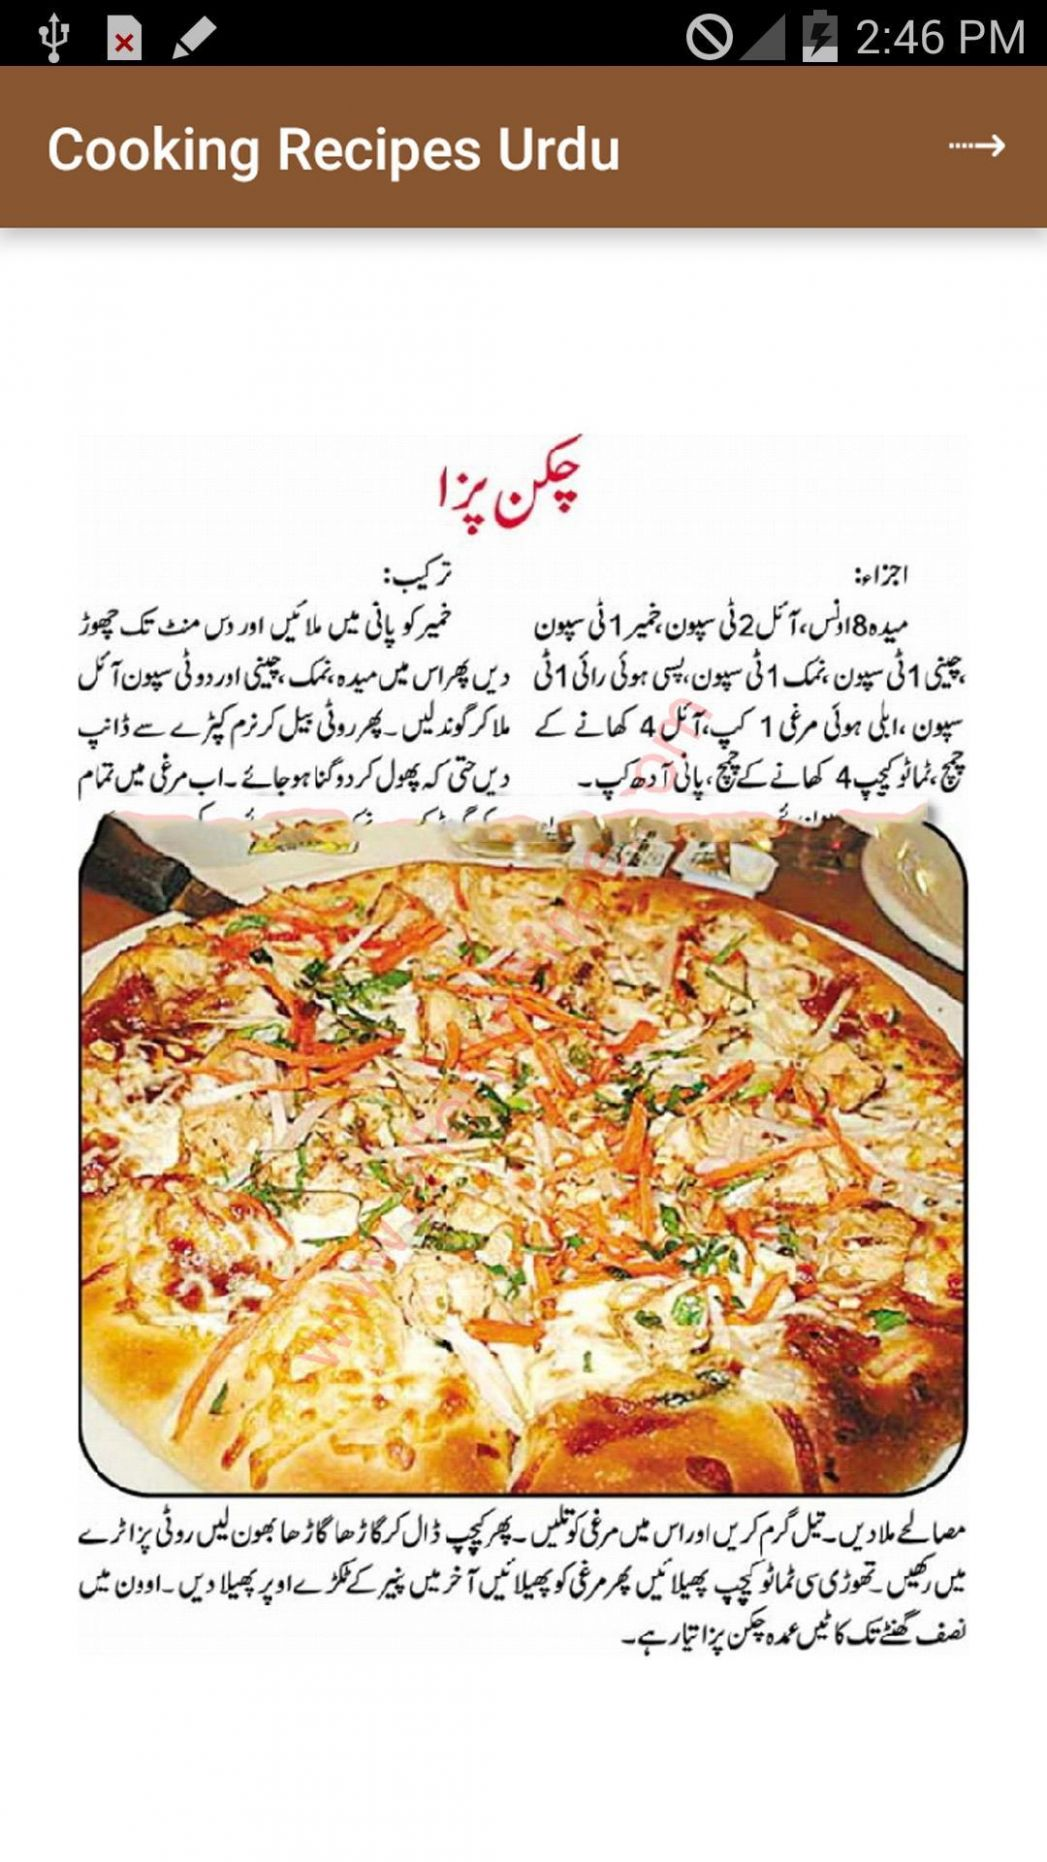 Cooking Recipes in Urdu for Android - APK Download - Recipes In Urdu Language